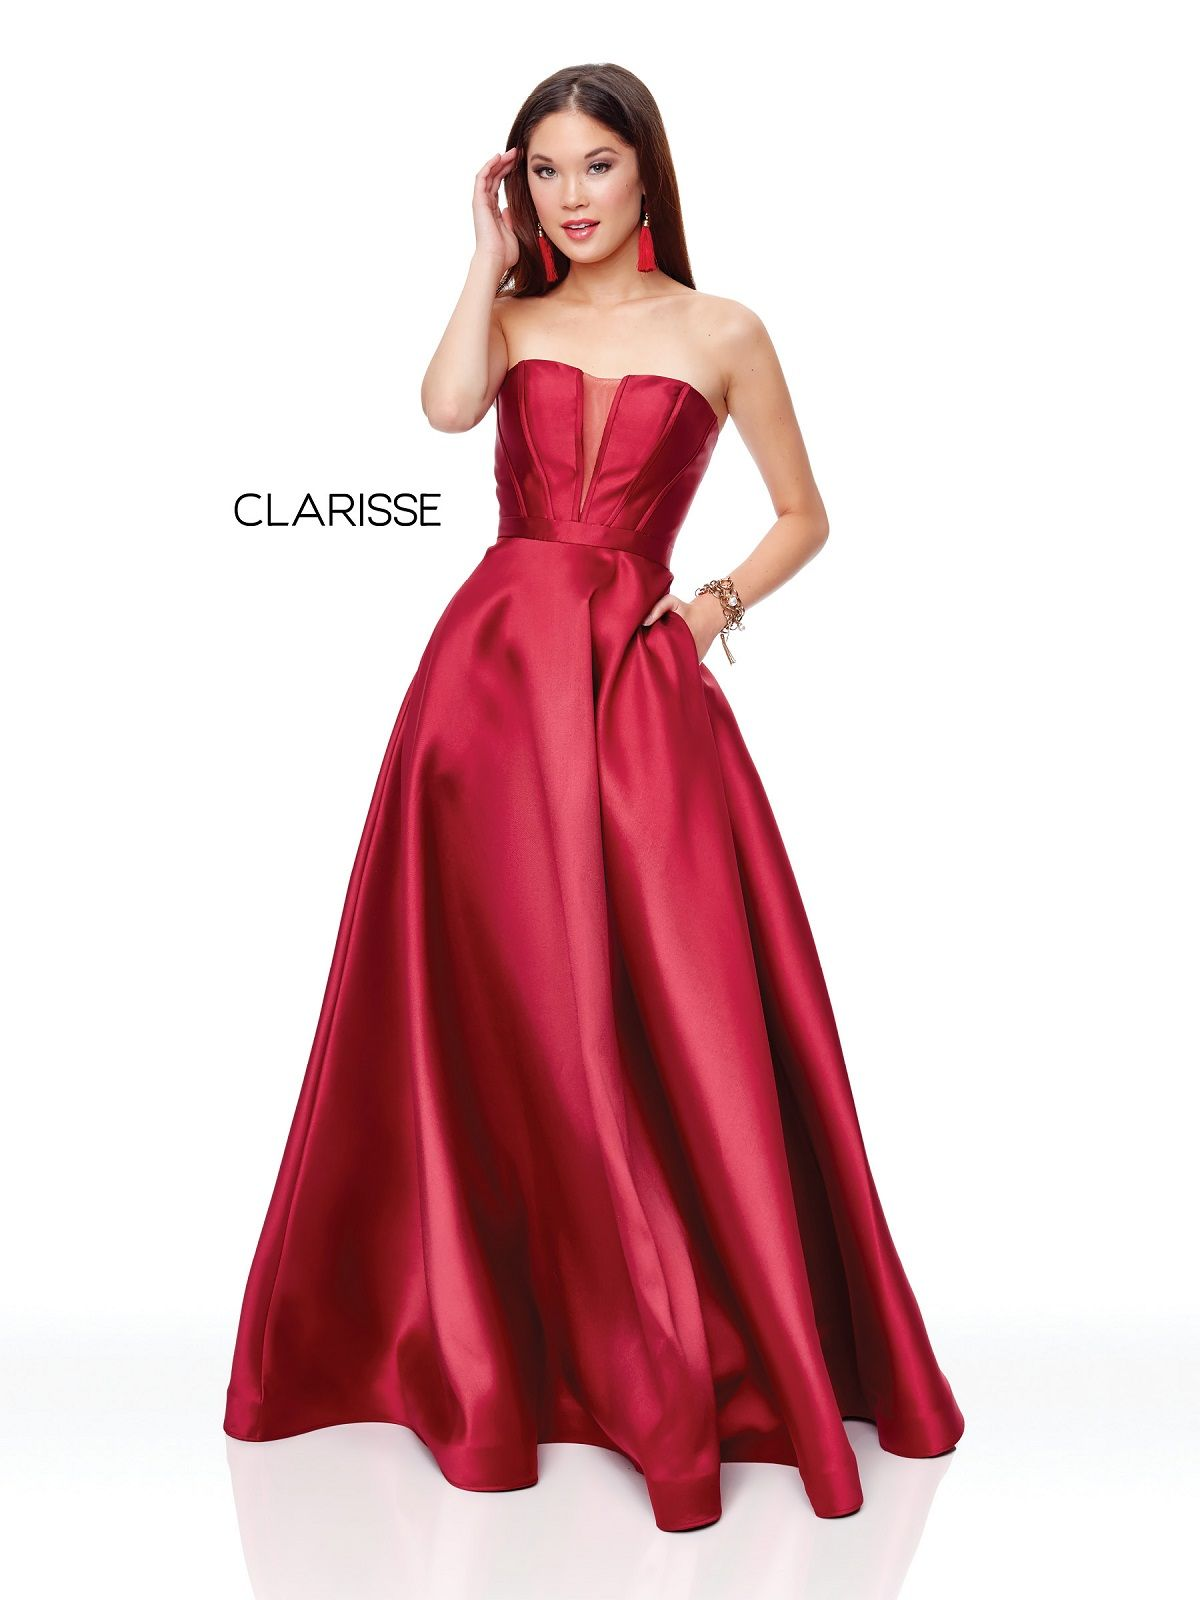 Clarisse 3743 Strapless Wine Corset Ball Gown Promgirl Net